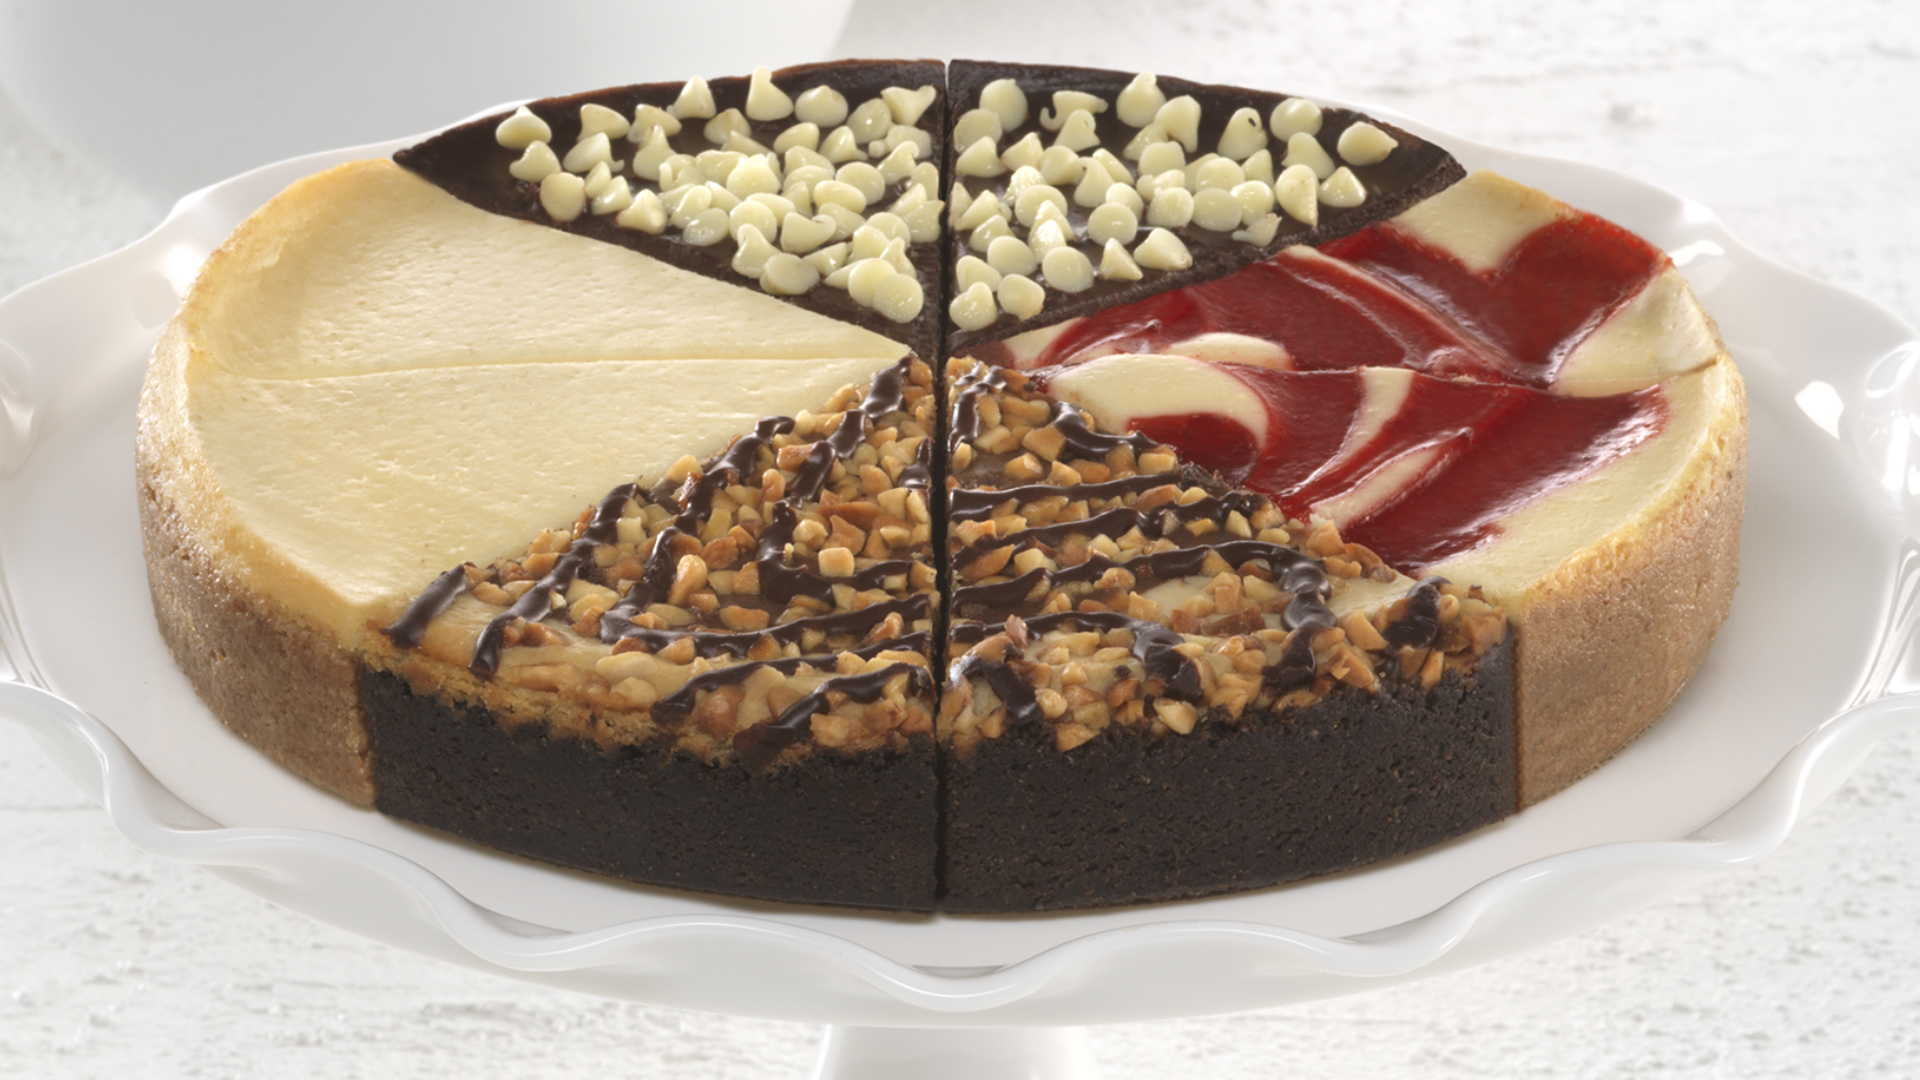 Variety Drizzle Cheesecake